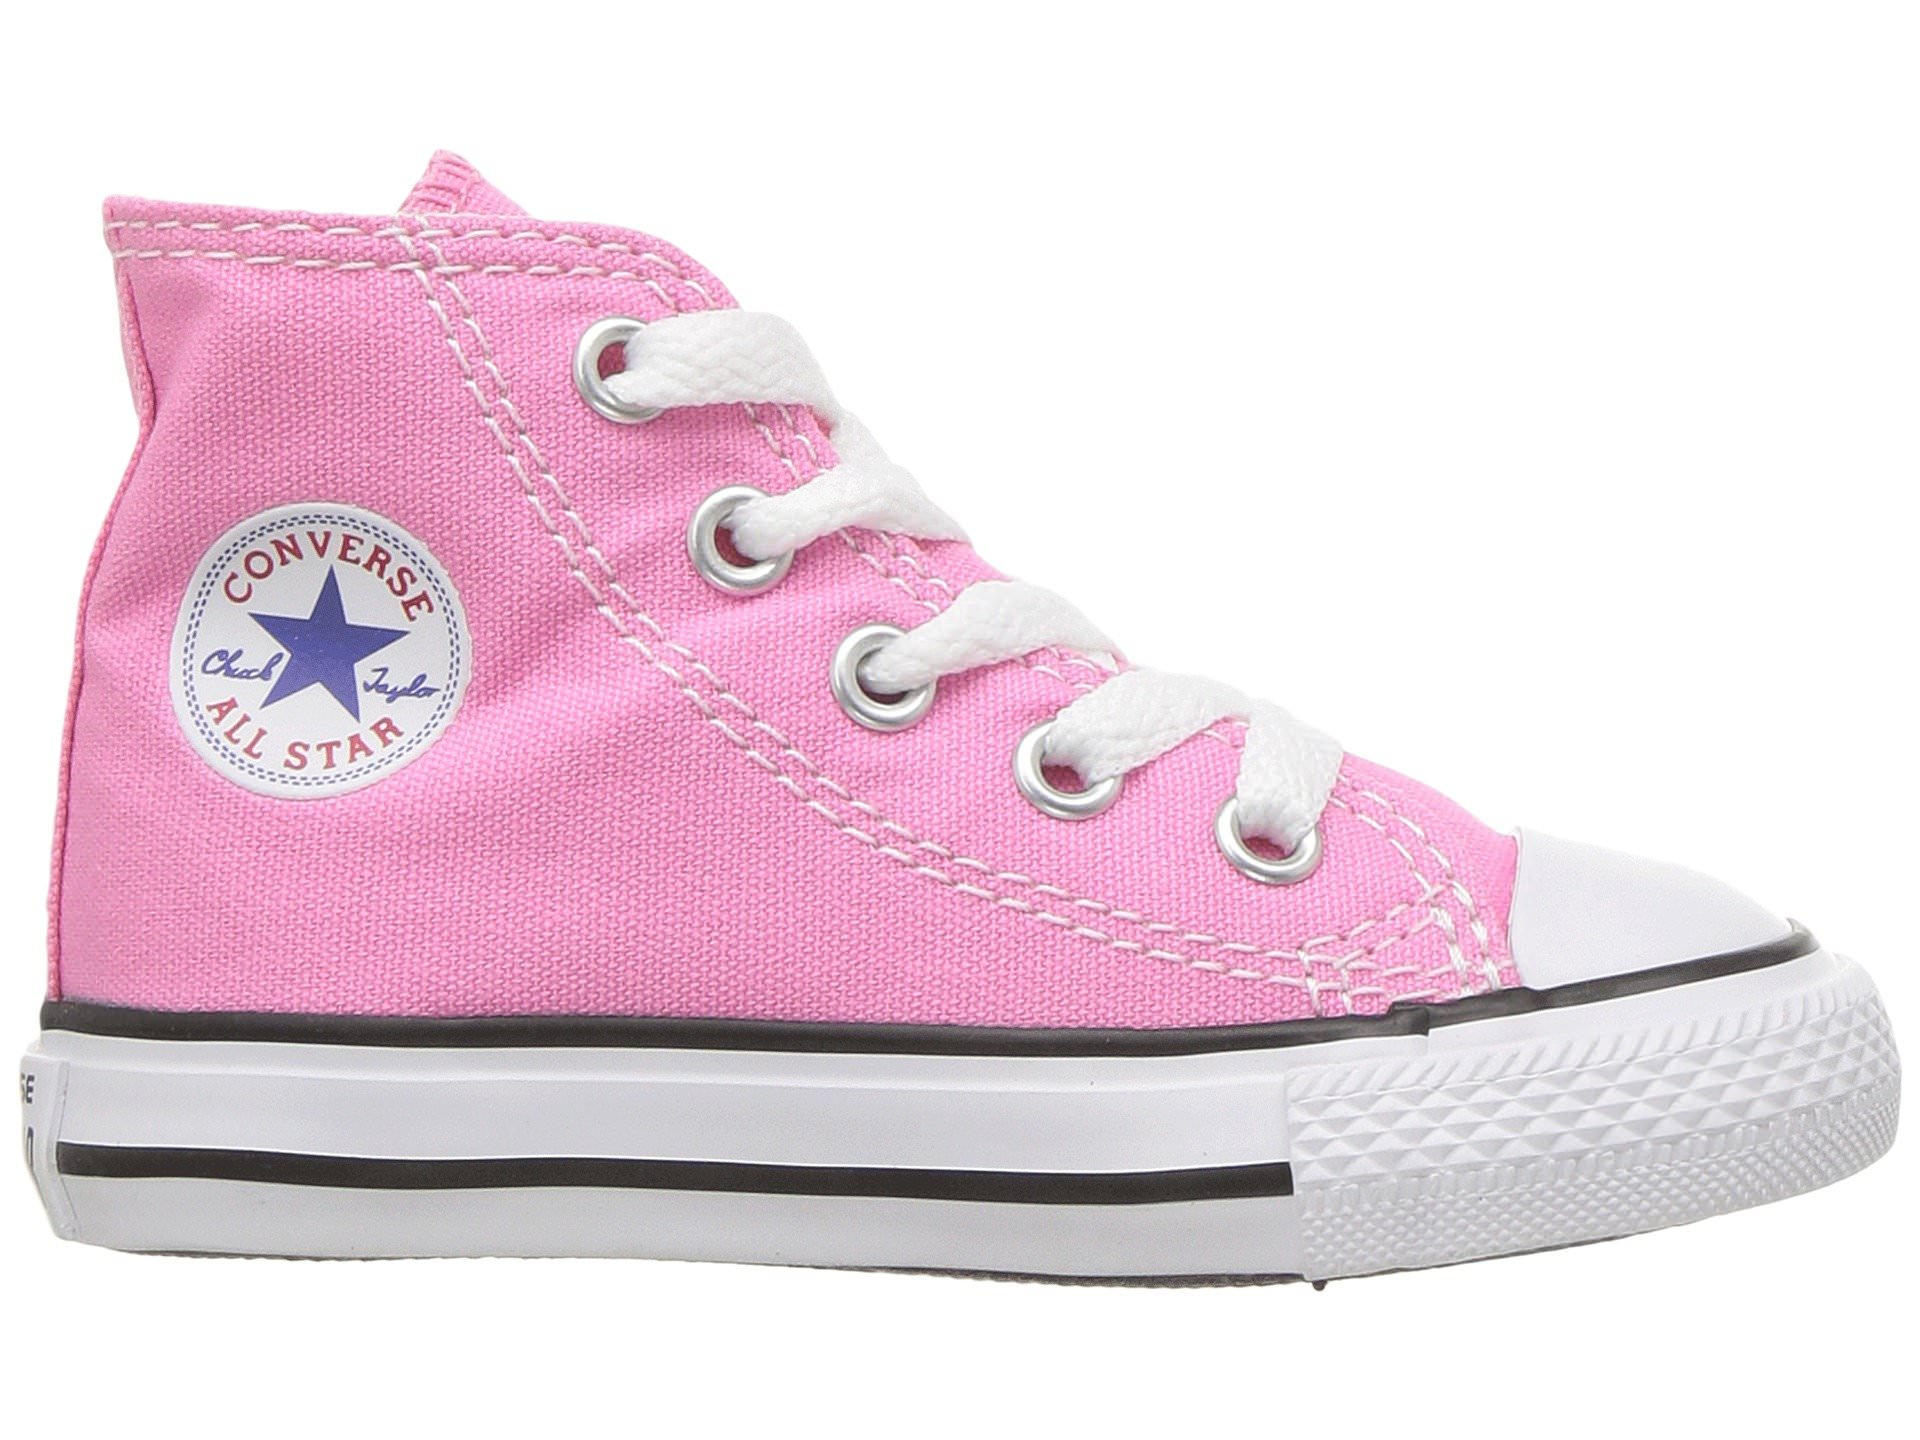 87805d1c99692b Converse CHUCK TAYLOR ALL STAR Infant Toddler Pink Canvas High Top Sneaker  Shoes